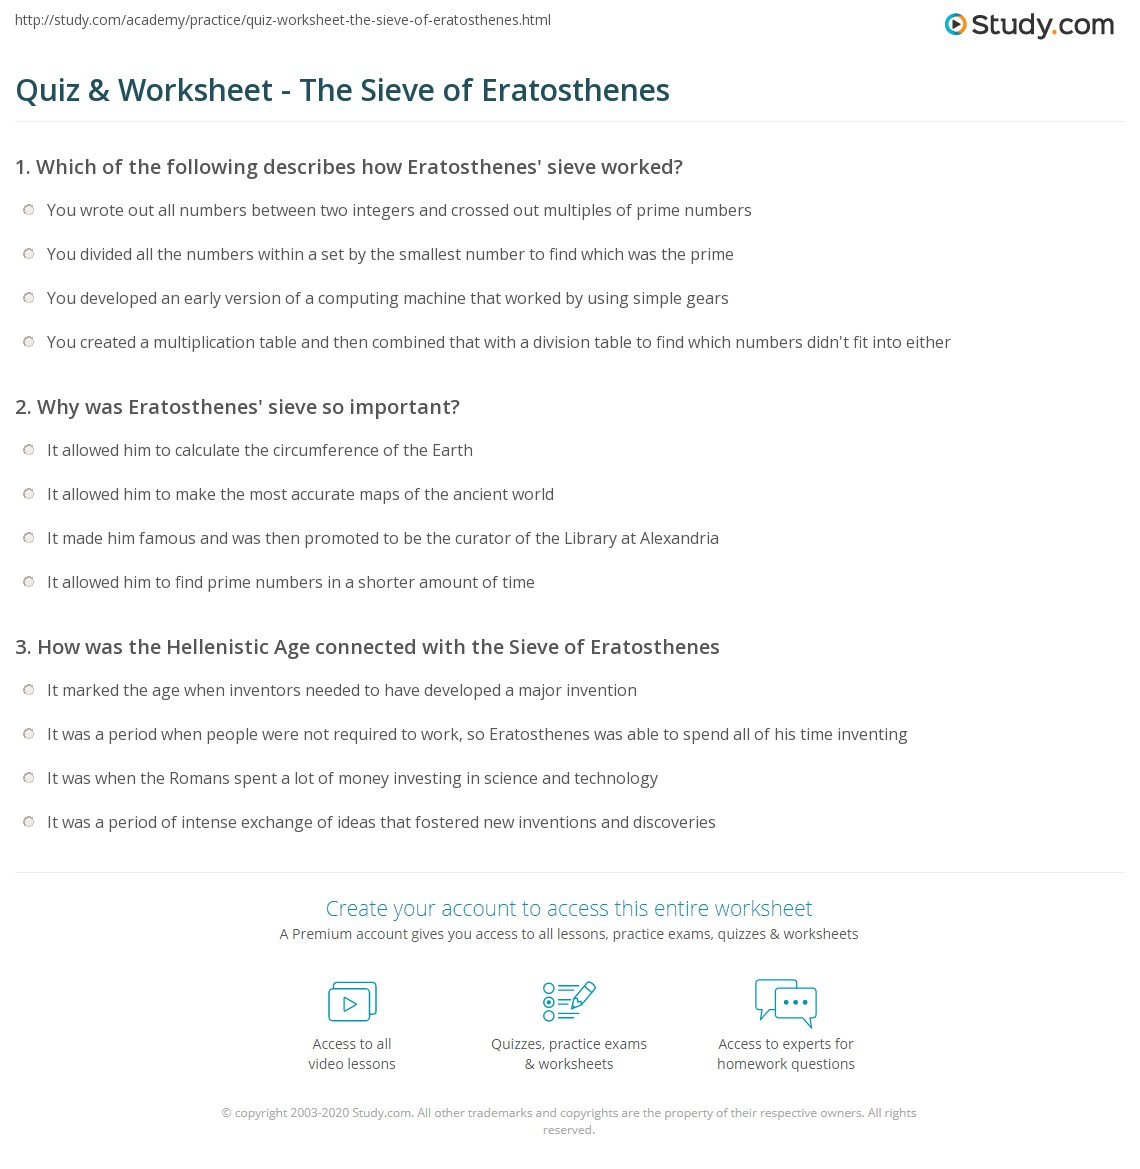 Quiz & Worksheet - The Sieve of Eratosthenes | Study.com